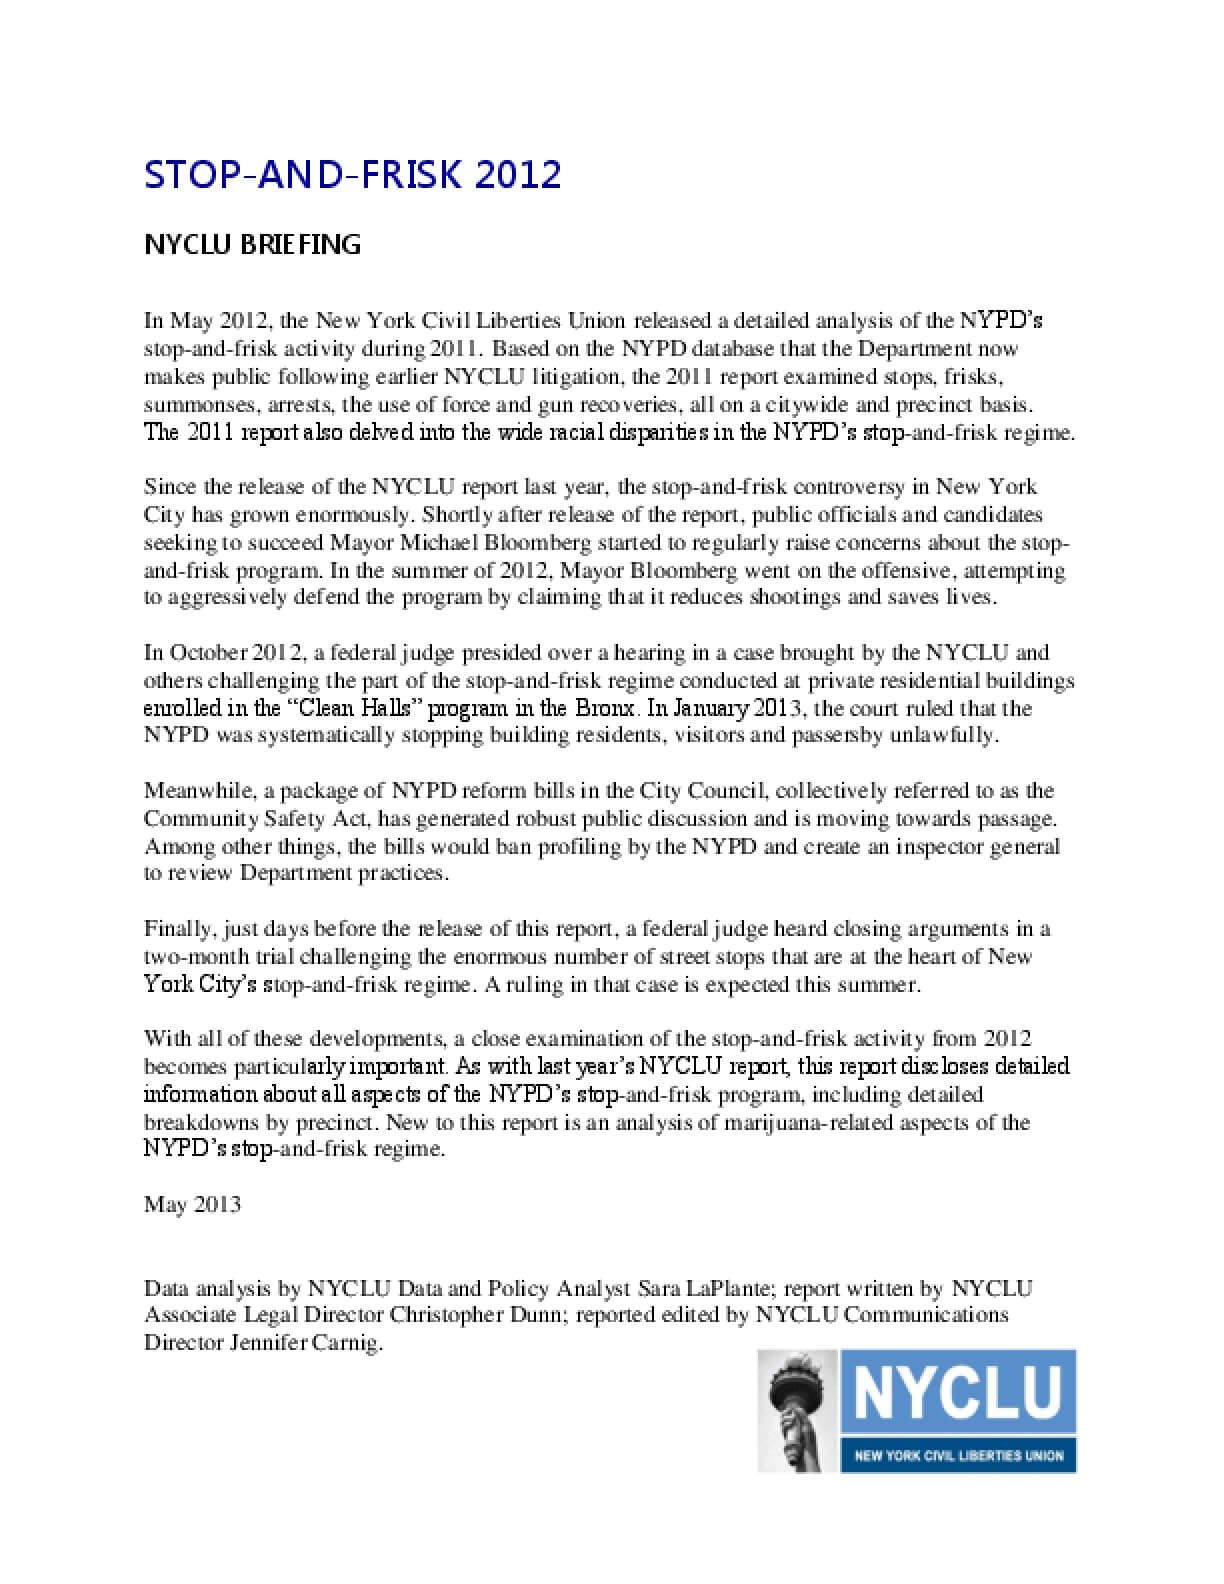 Stop and Frisk 2012: NYCLU Briefing